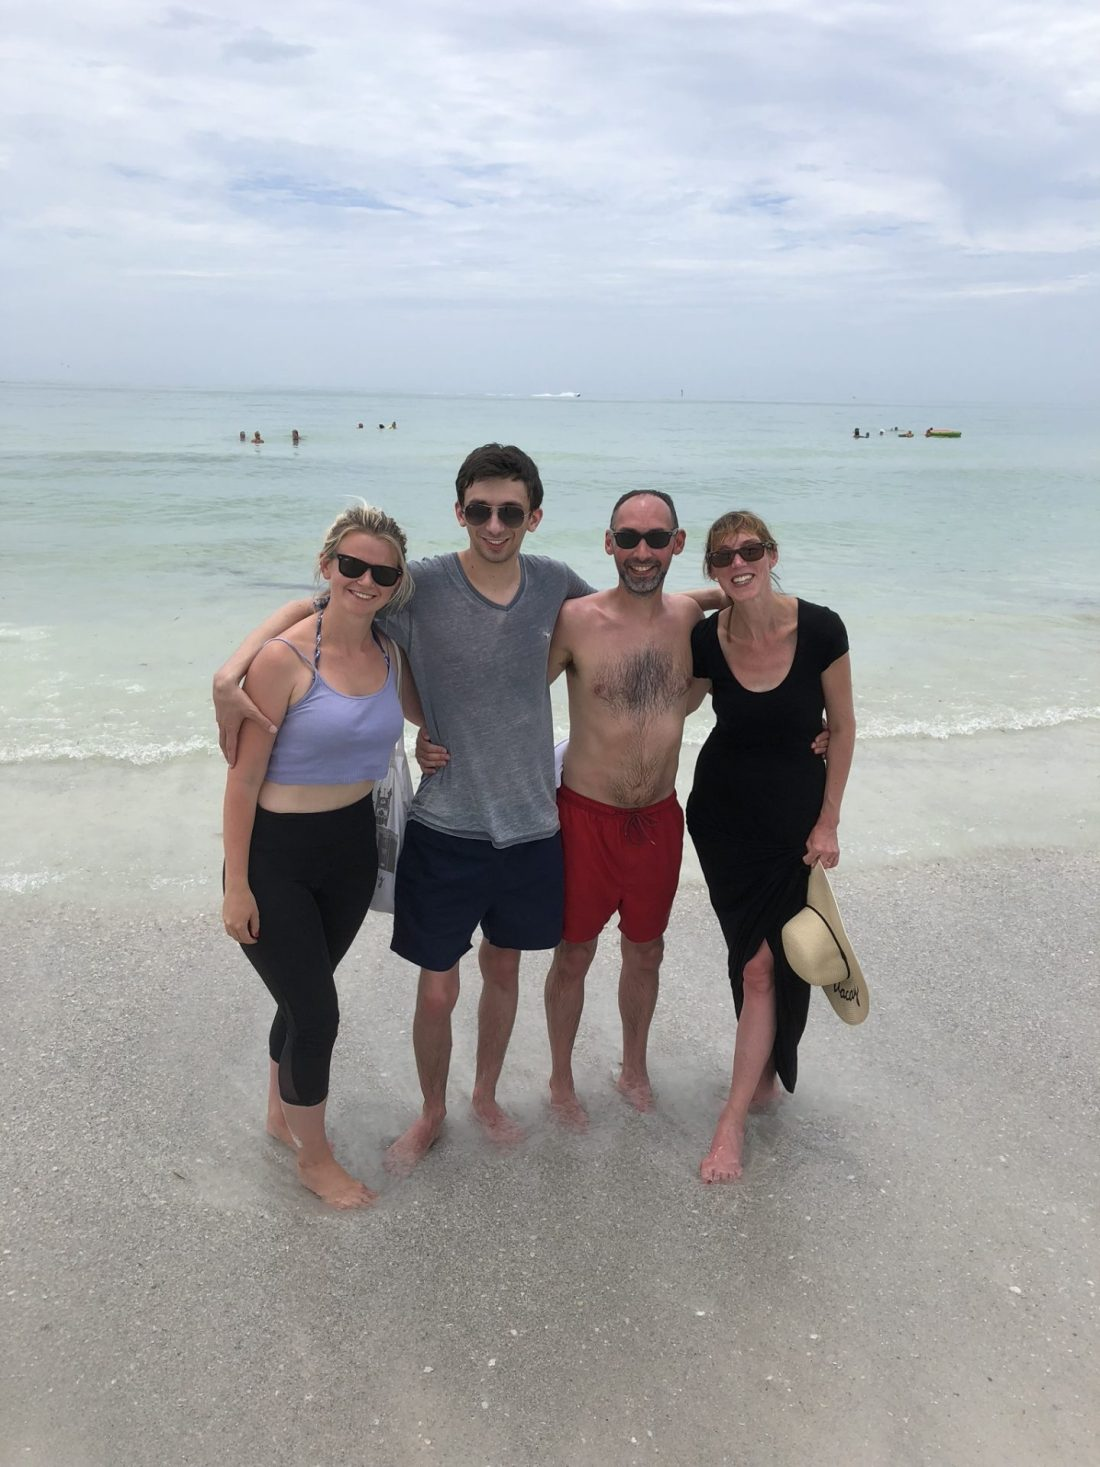 Family photo at Siesta Key beach, Florida